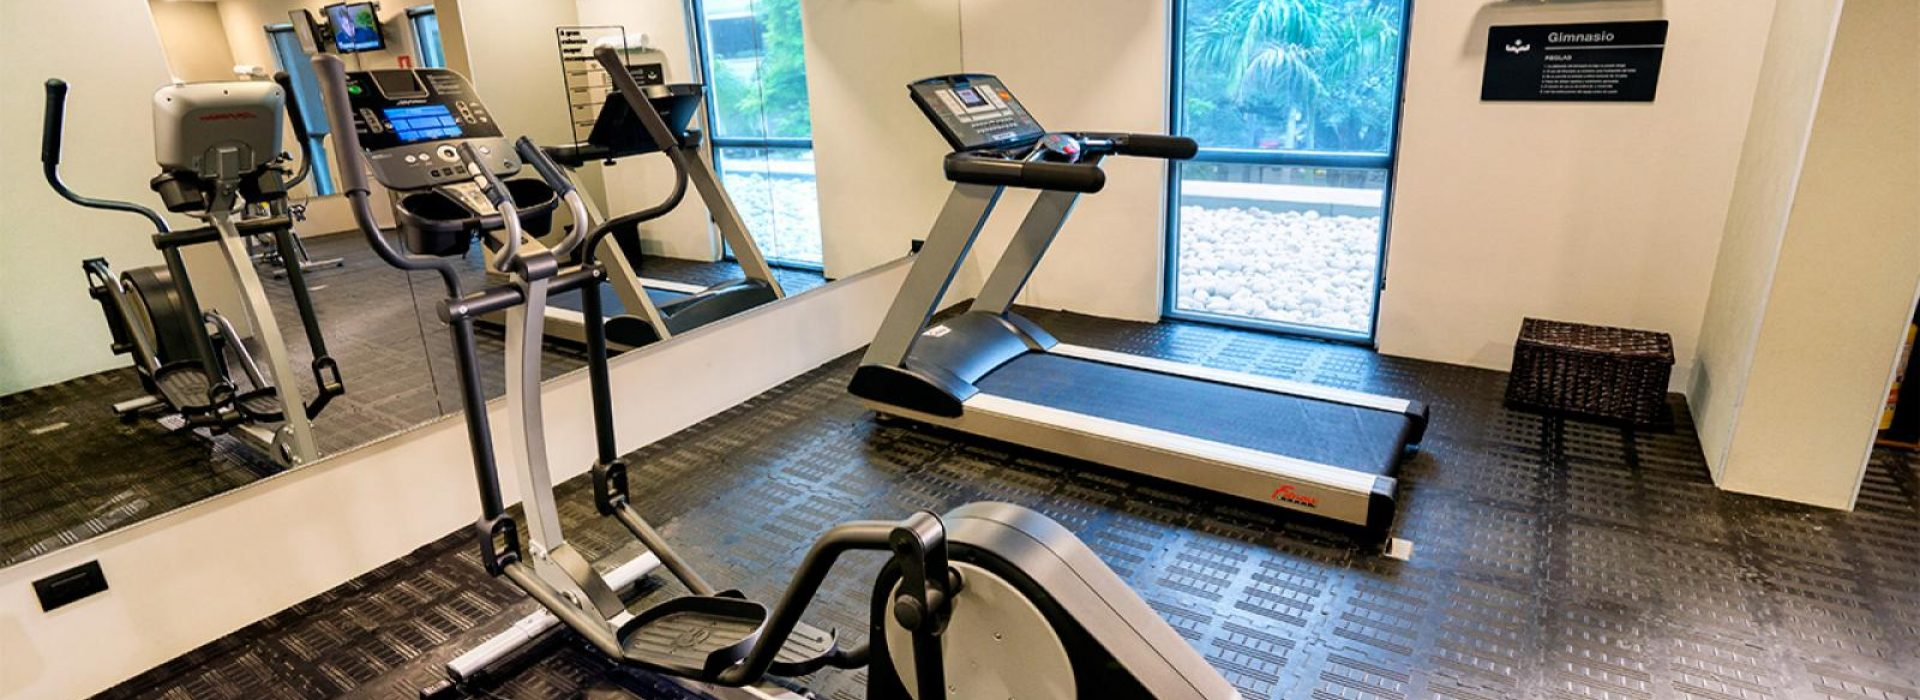 hotel-cali-colombia-city-express-plus-gimnasio